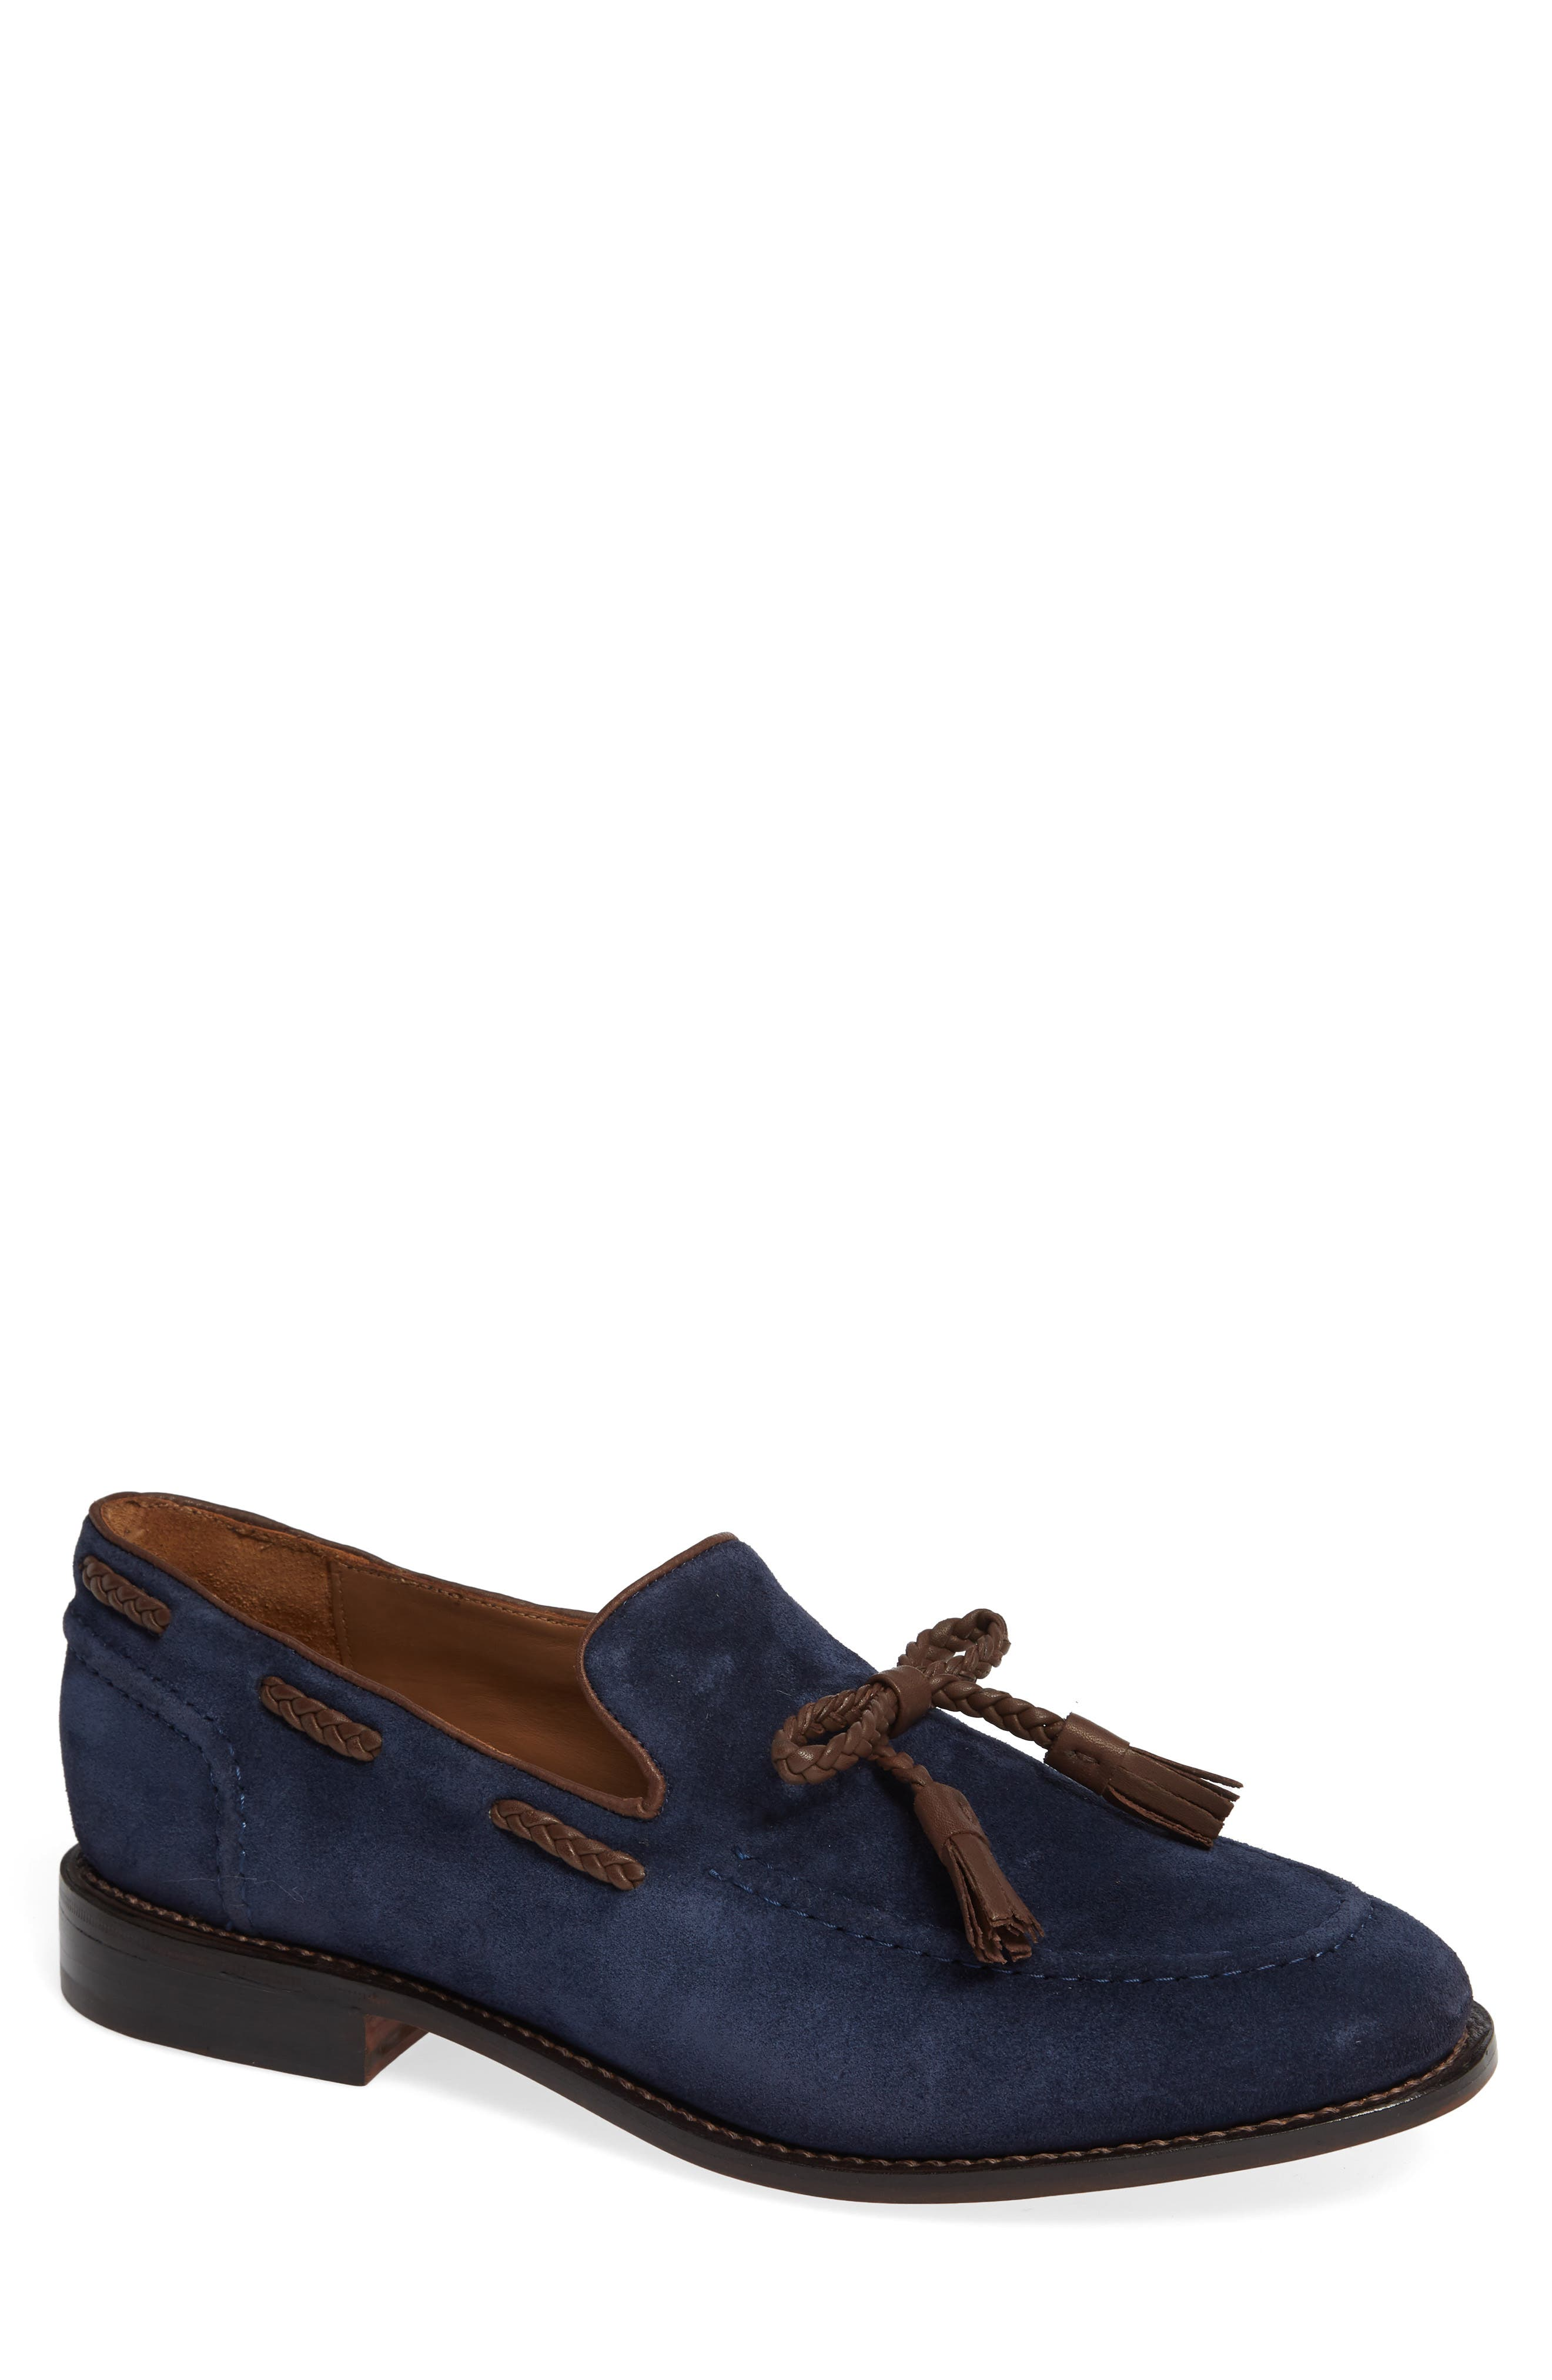 Braided Tassel Loafer,                         Main,                         color, NAVY SUEDE